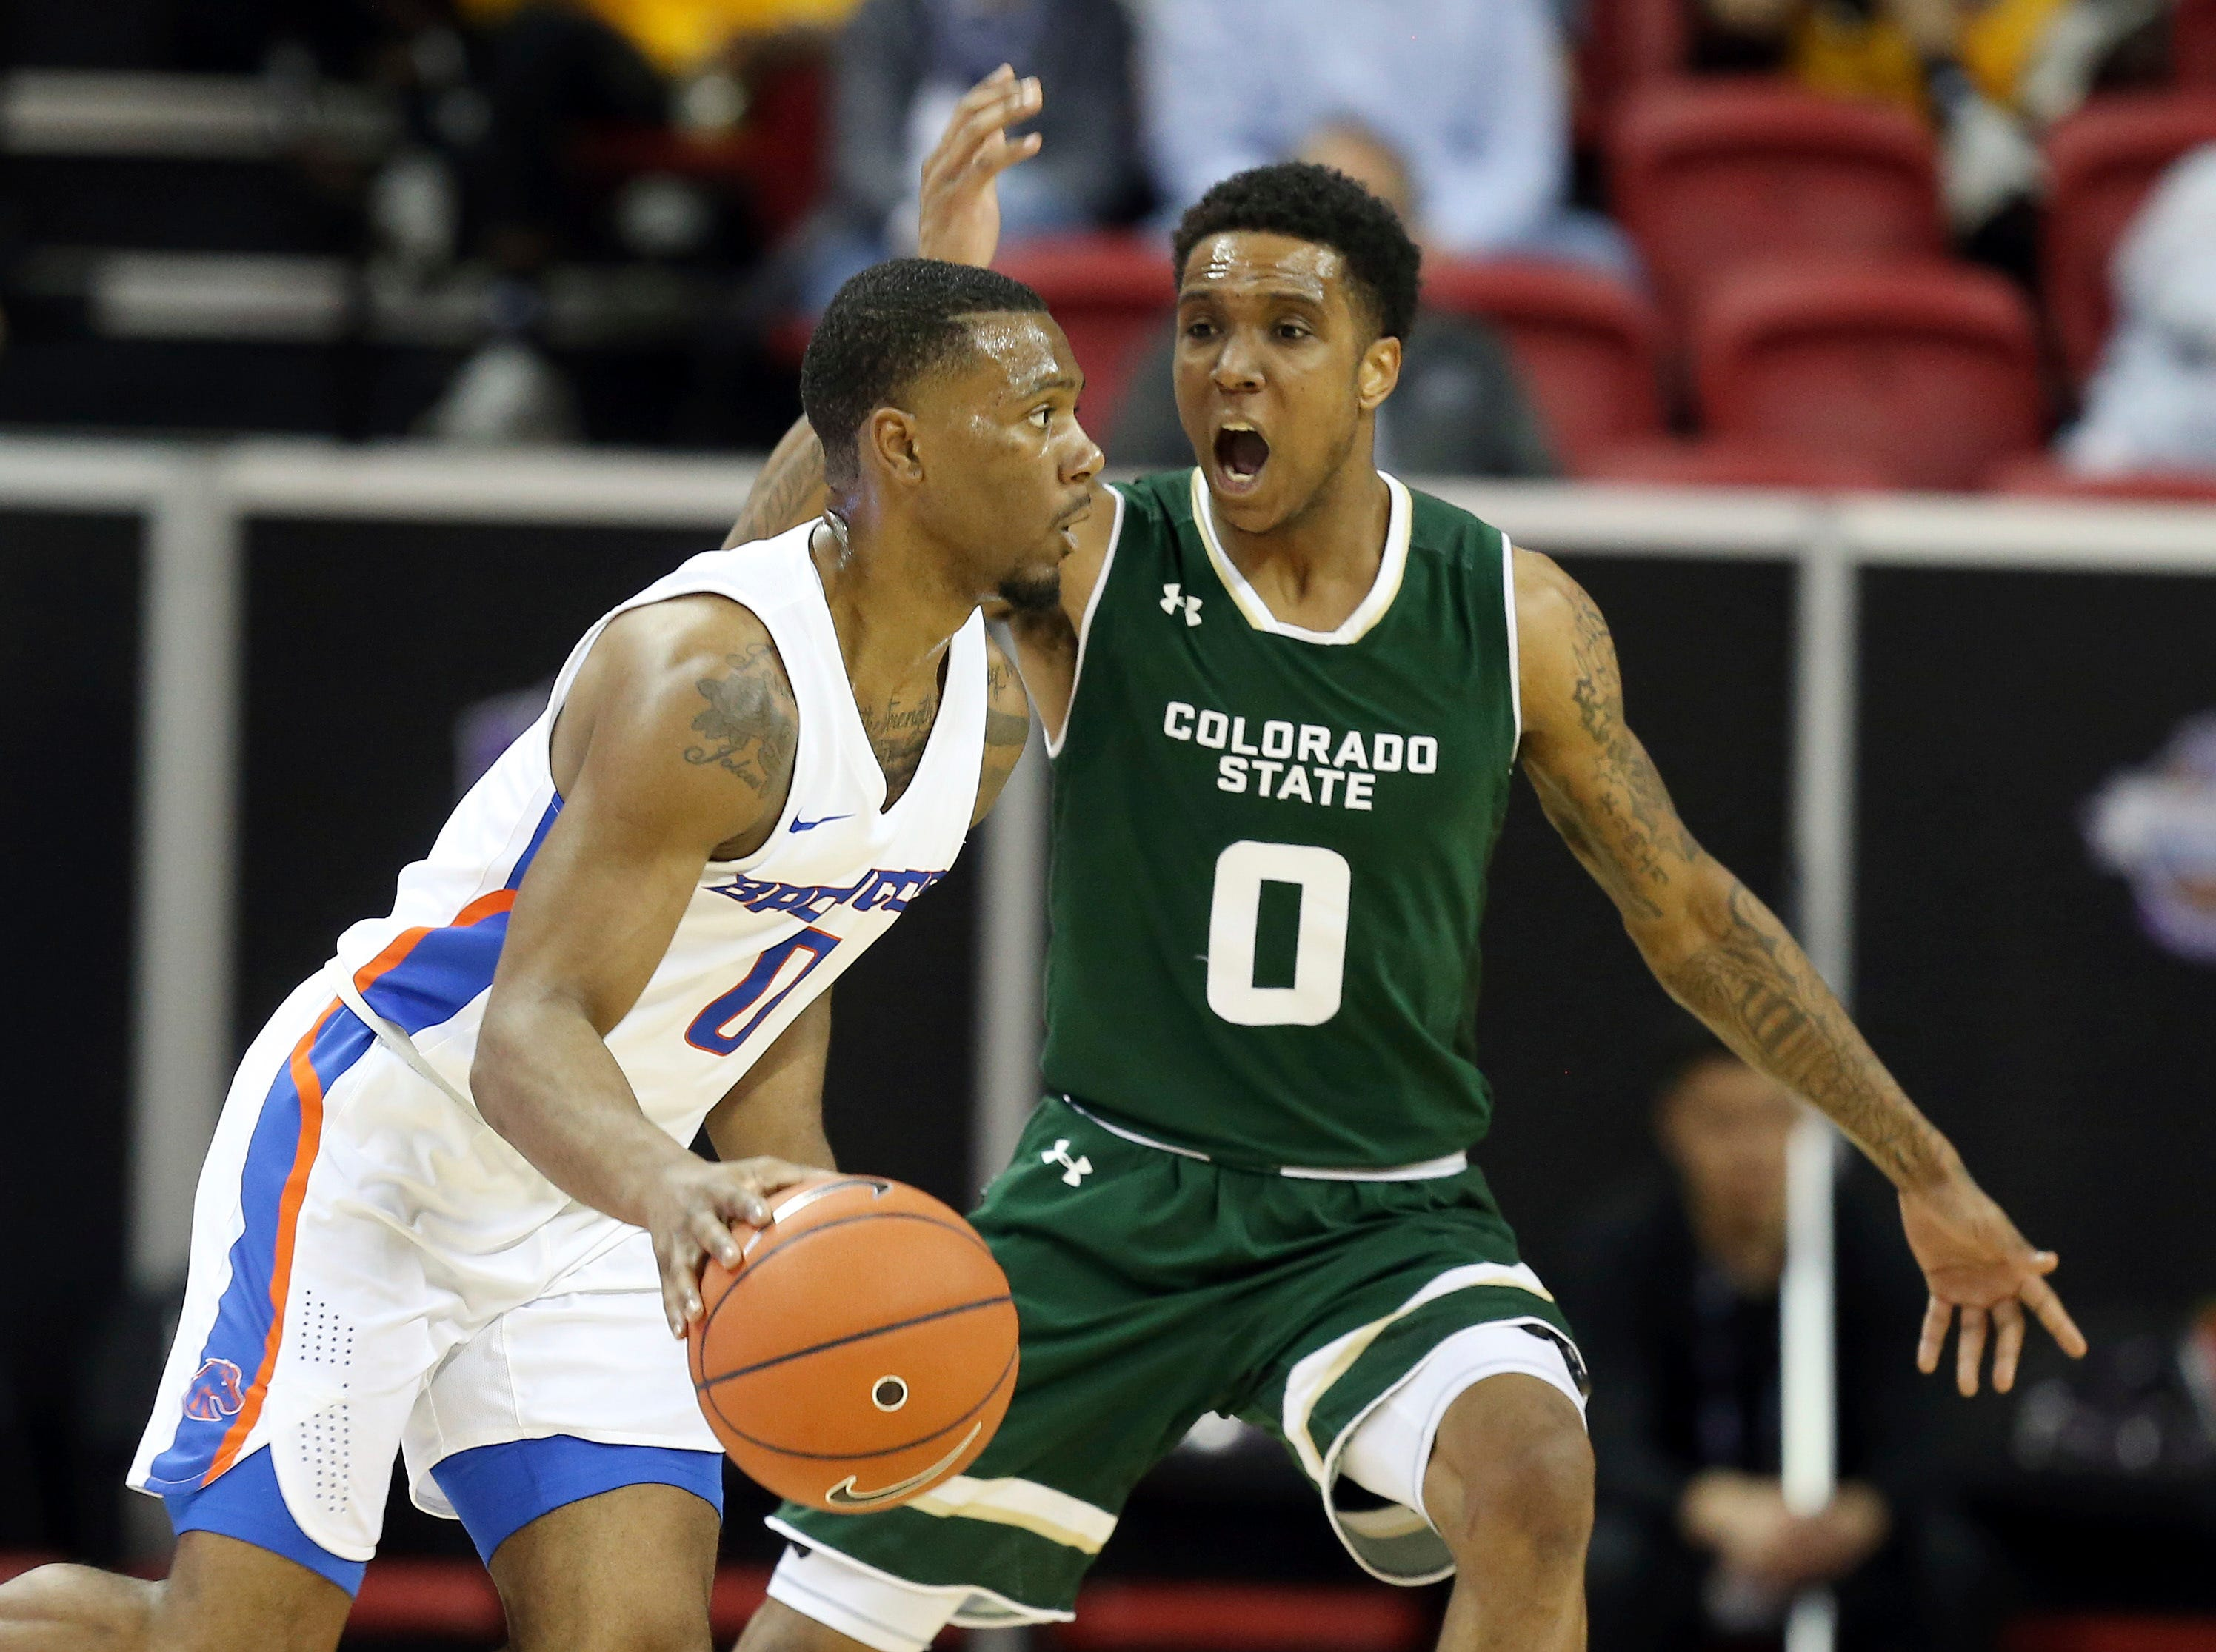 Colorado State's Hyron Edwards (0) defends as Boise State's Marcus Dickinson drives during the second half of an NCAA college basketball game in the Mountain West Conference tournament Wednesday, March 13, 2019, in Las Vegas.